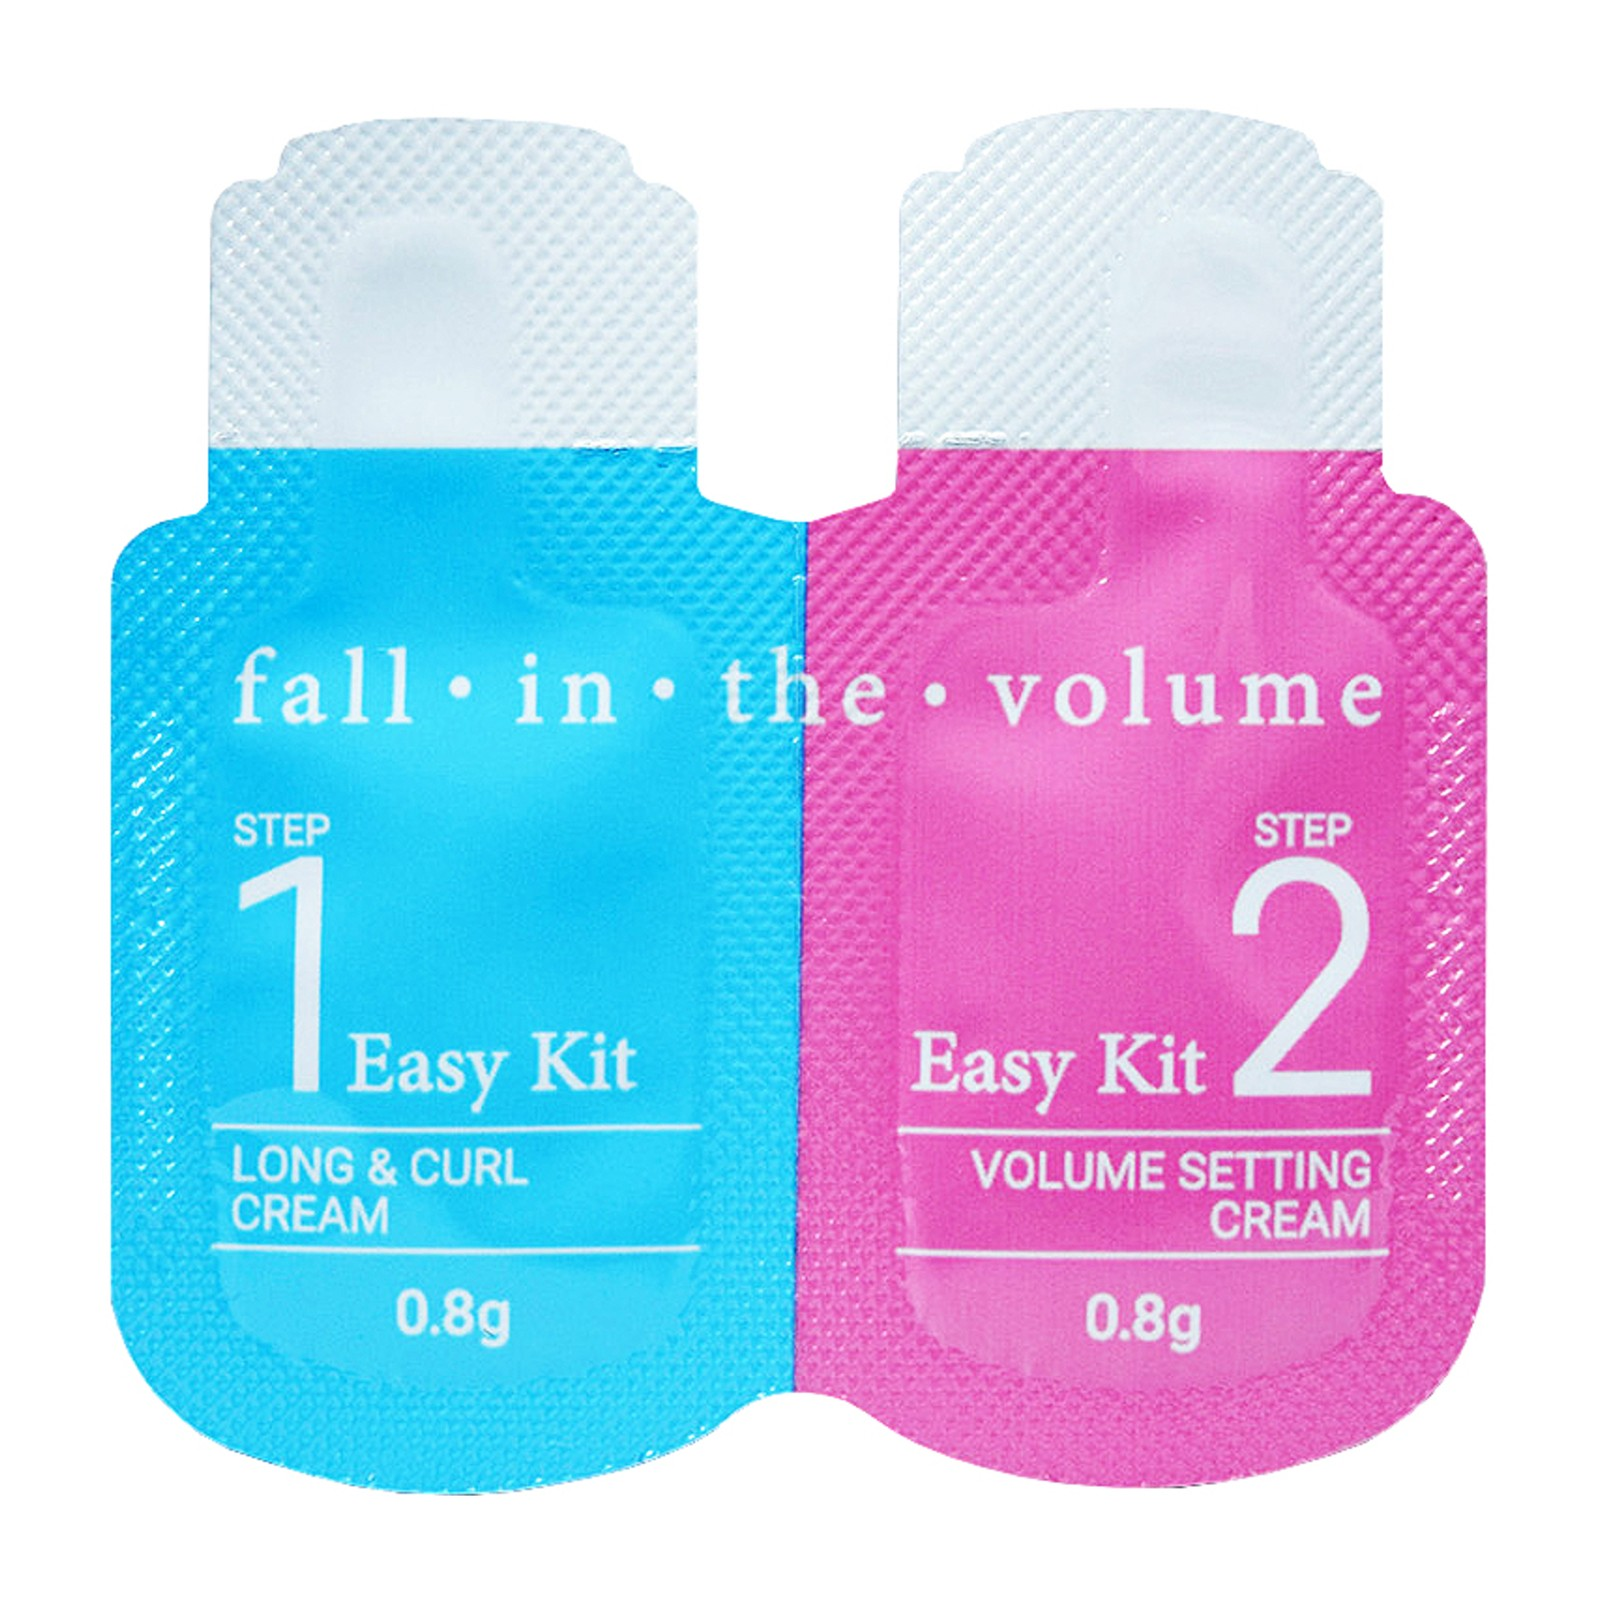 Fall in the Volume - Easy Kit